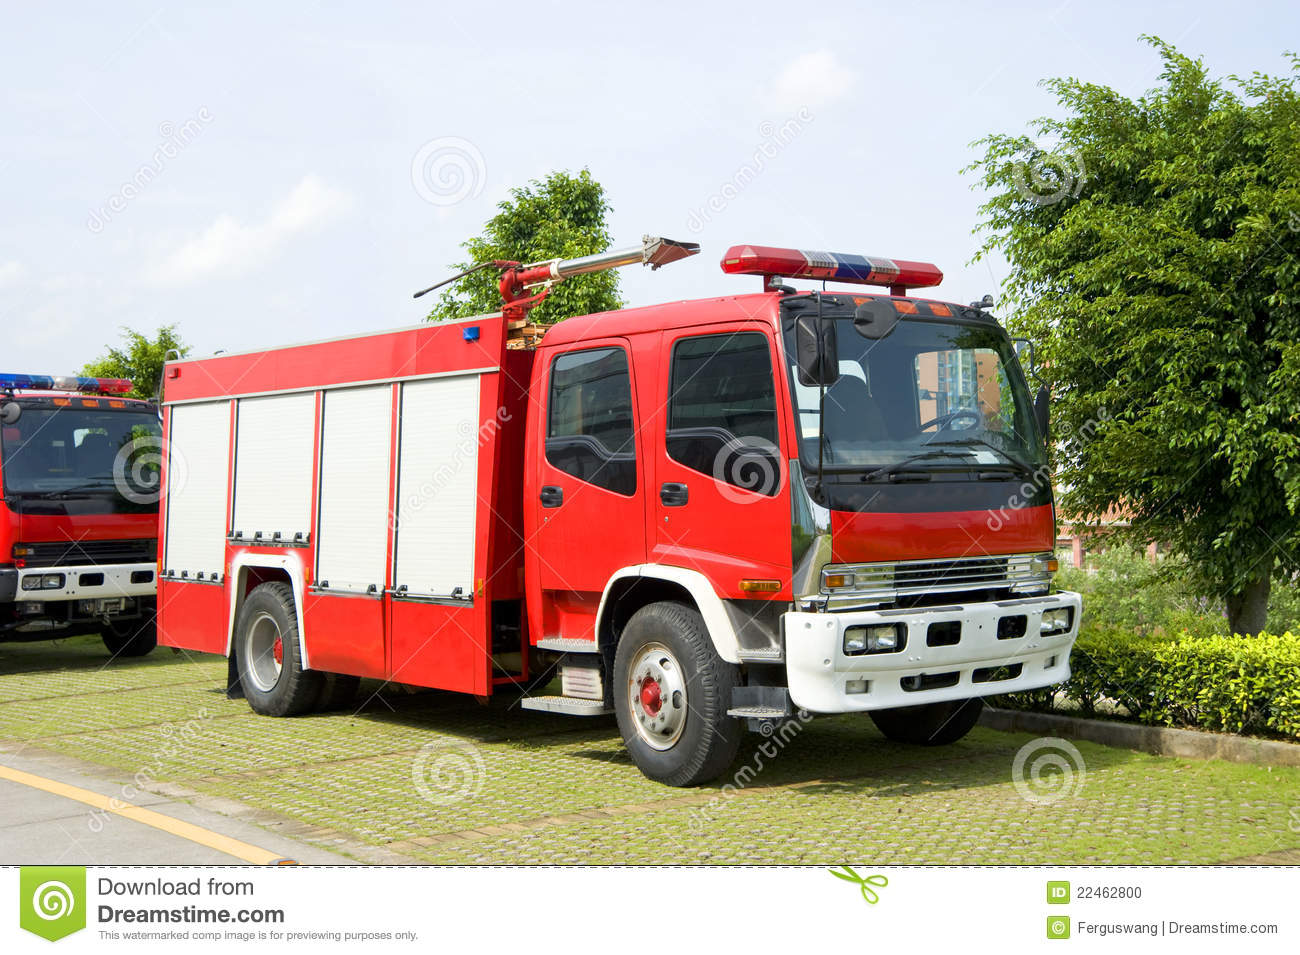 Fire engines in park